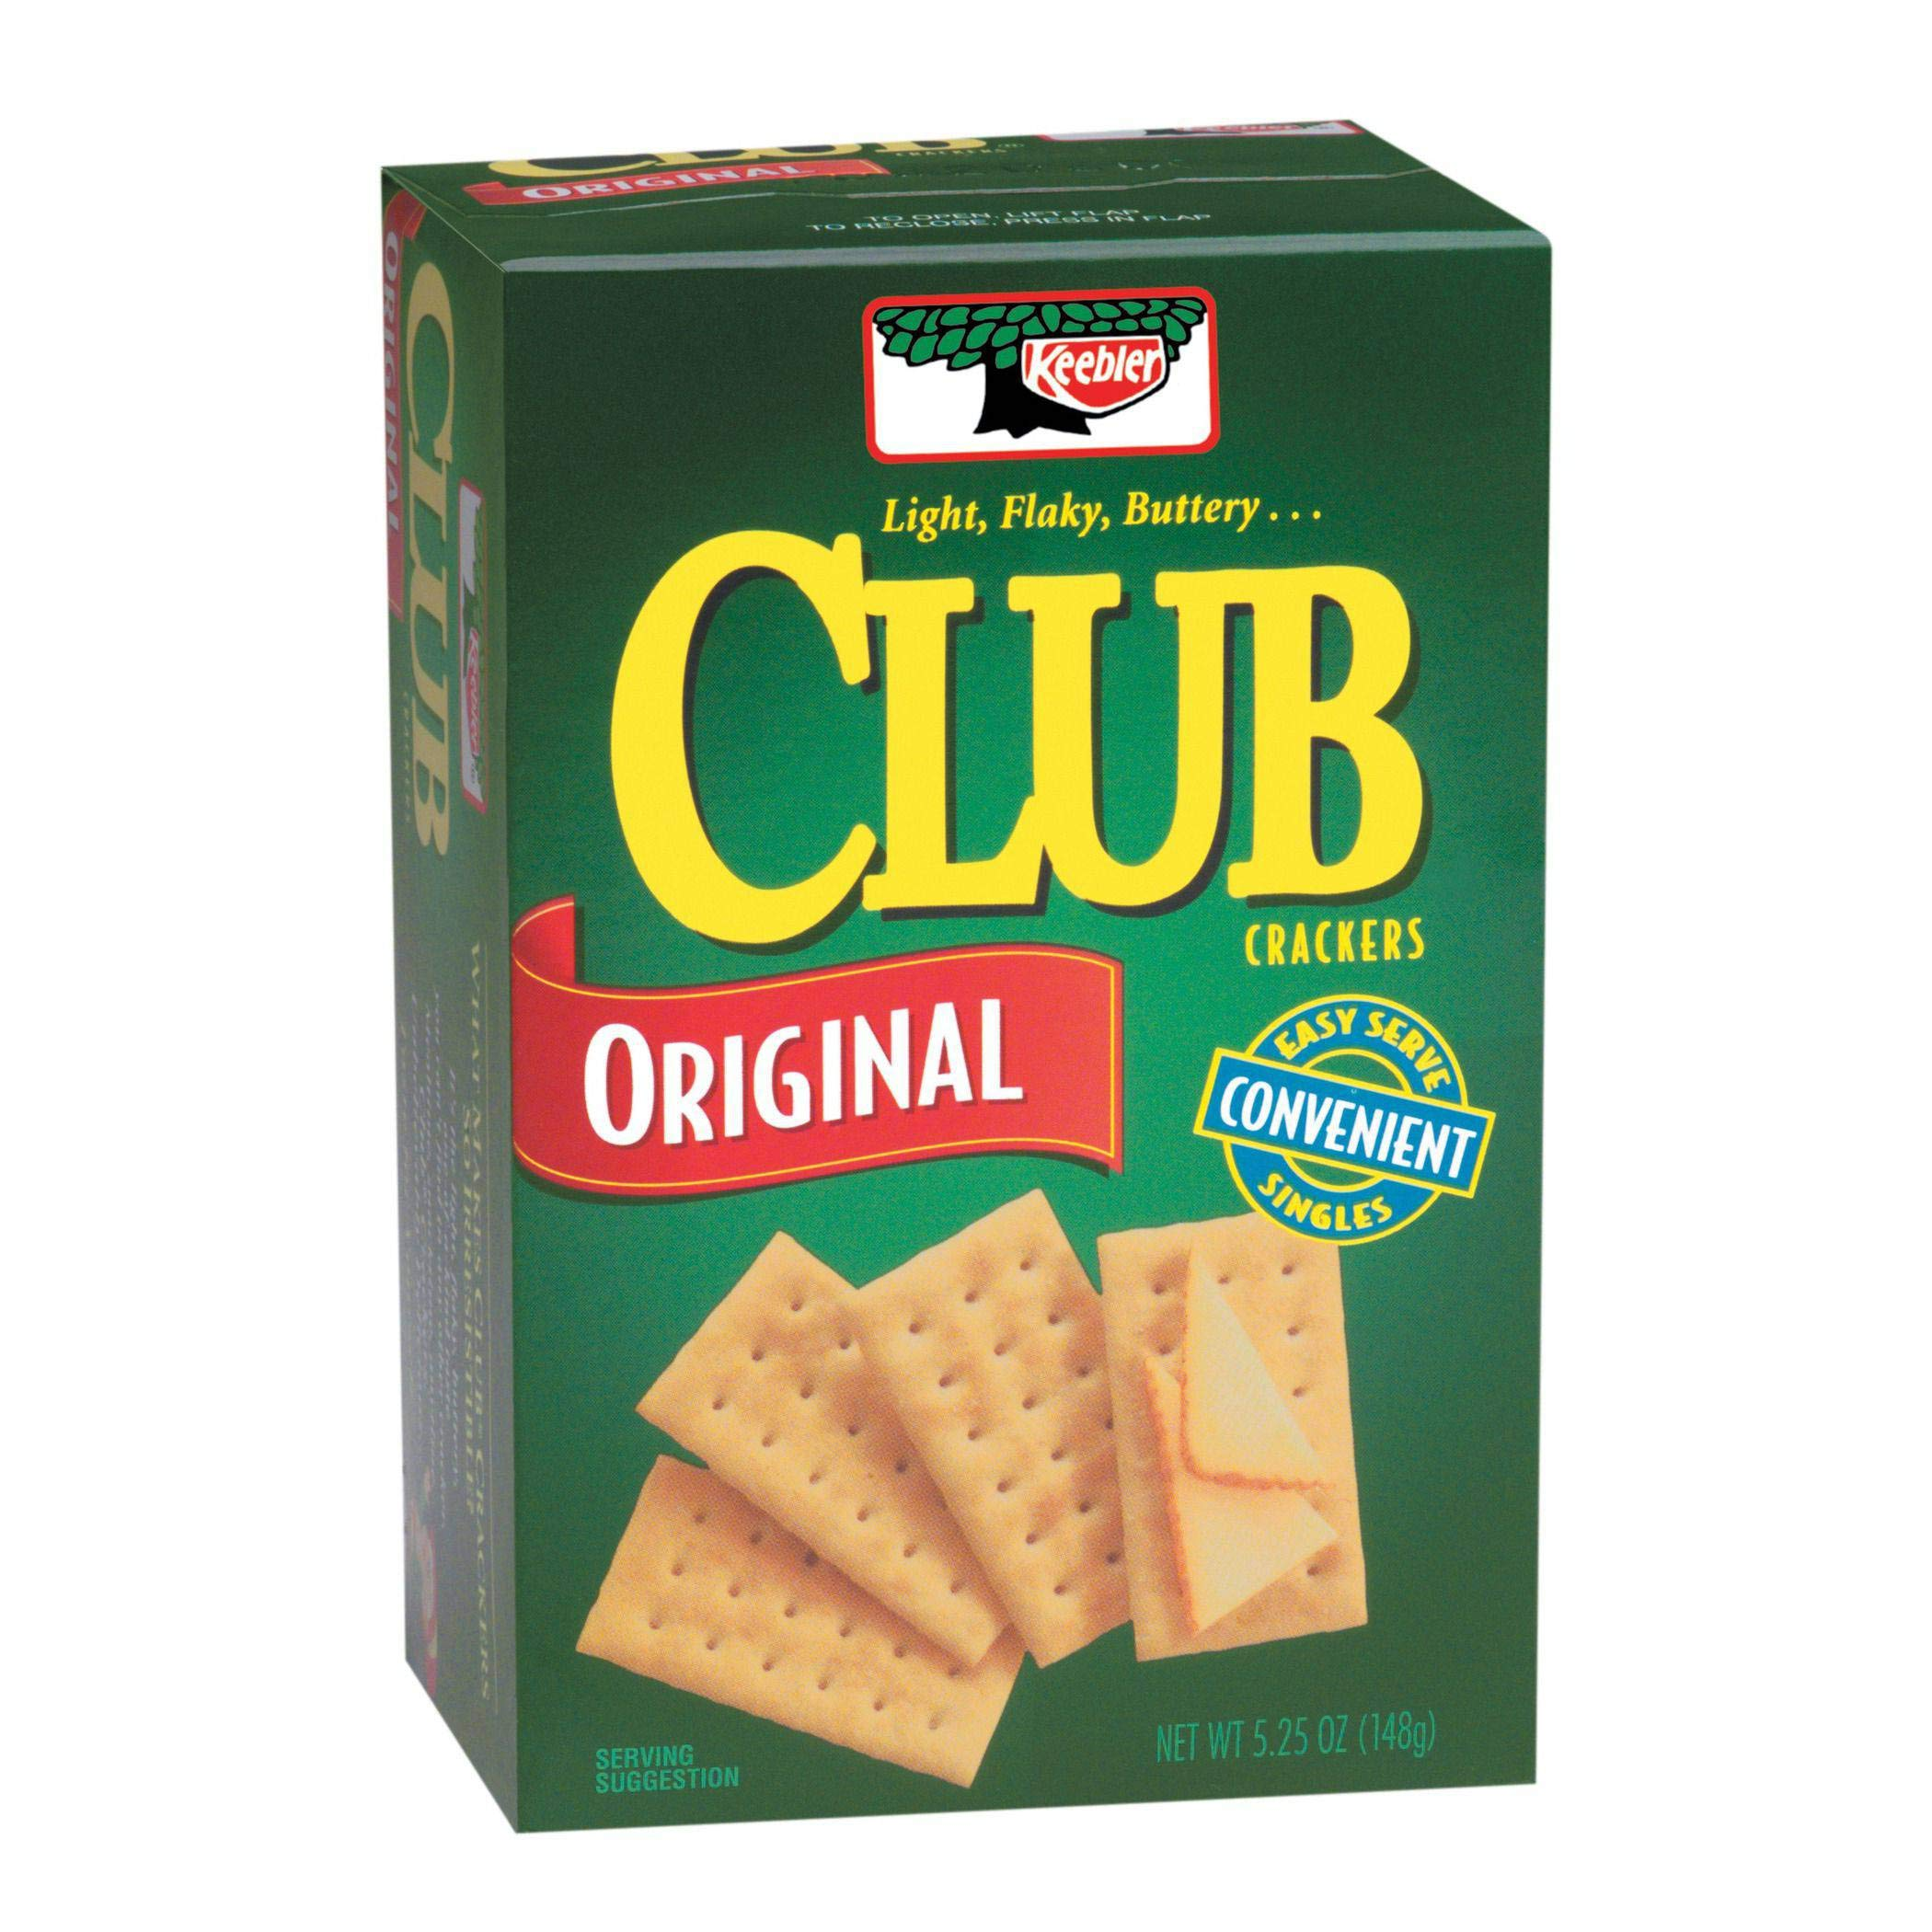 Keebler Club Crackers - 5.25 oz. package, 12 per case by Kellogg's